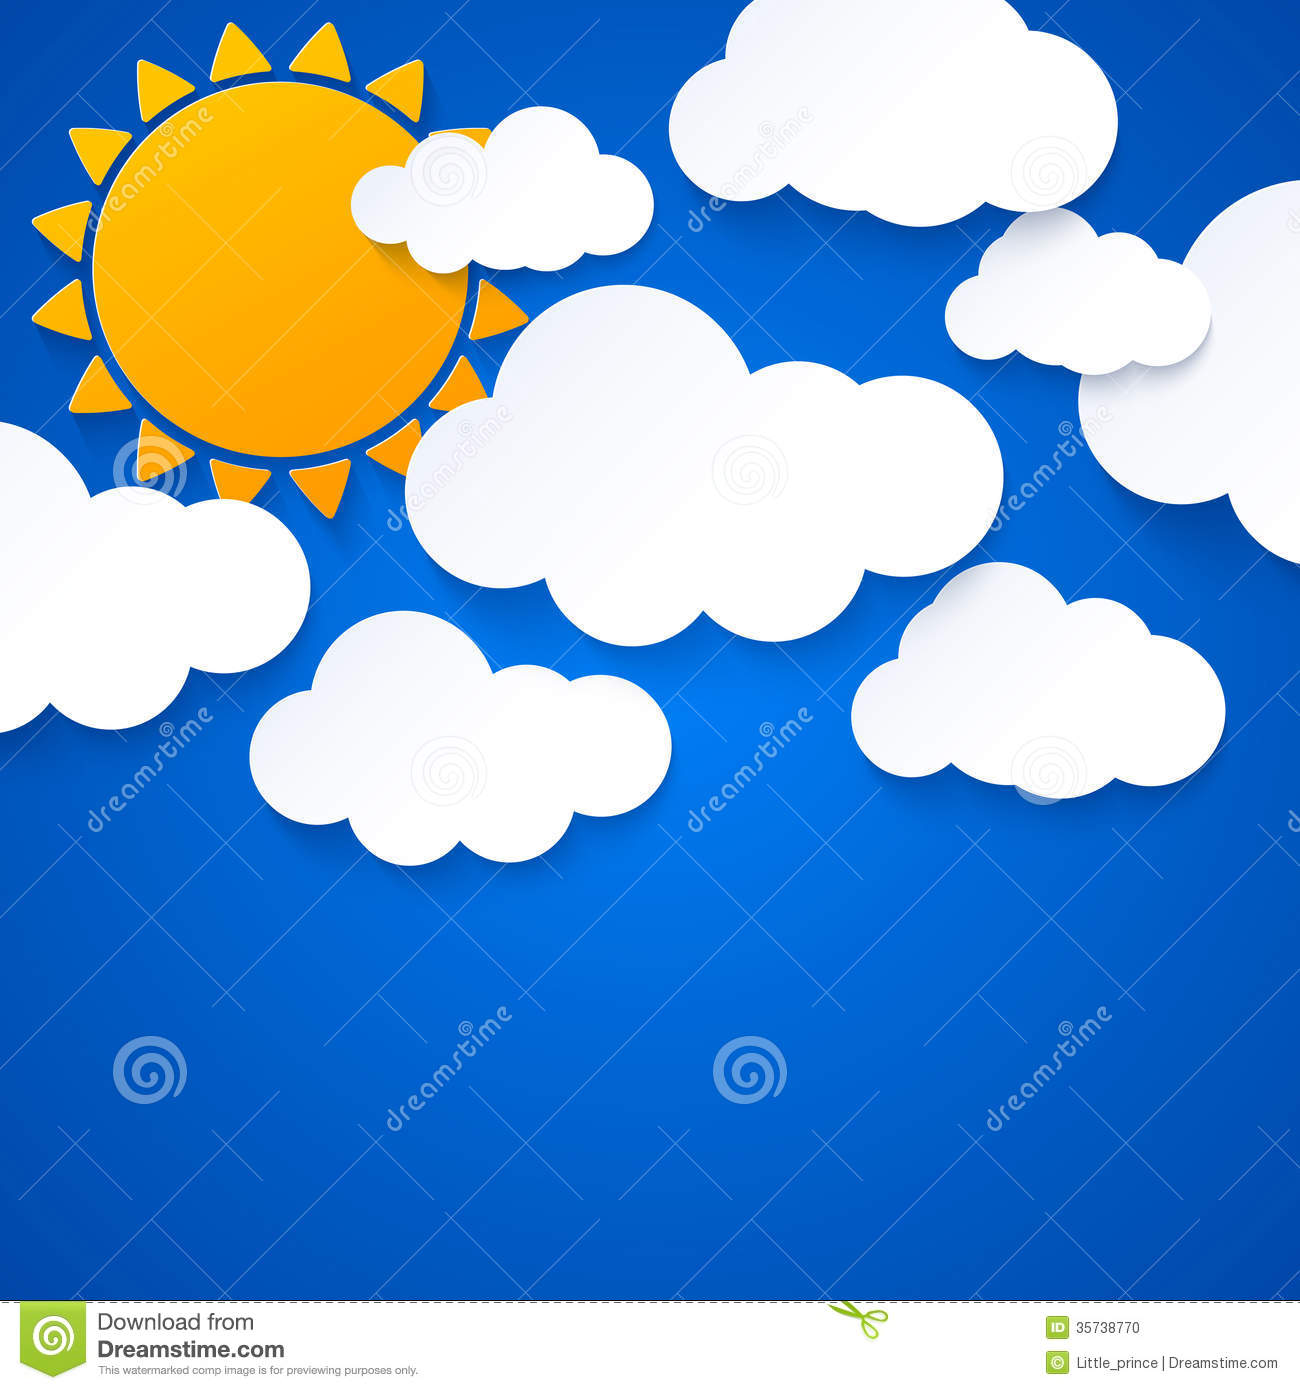 sun and clouds on blue sky background stock vector illustration of